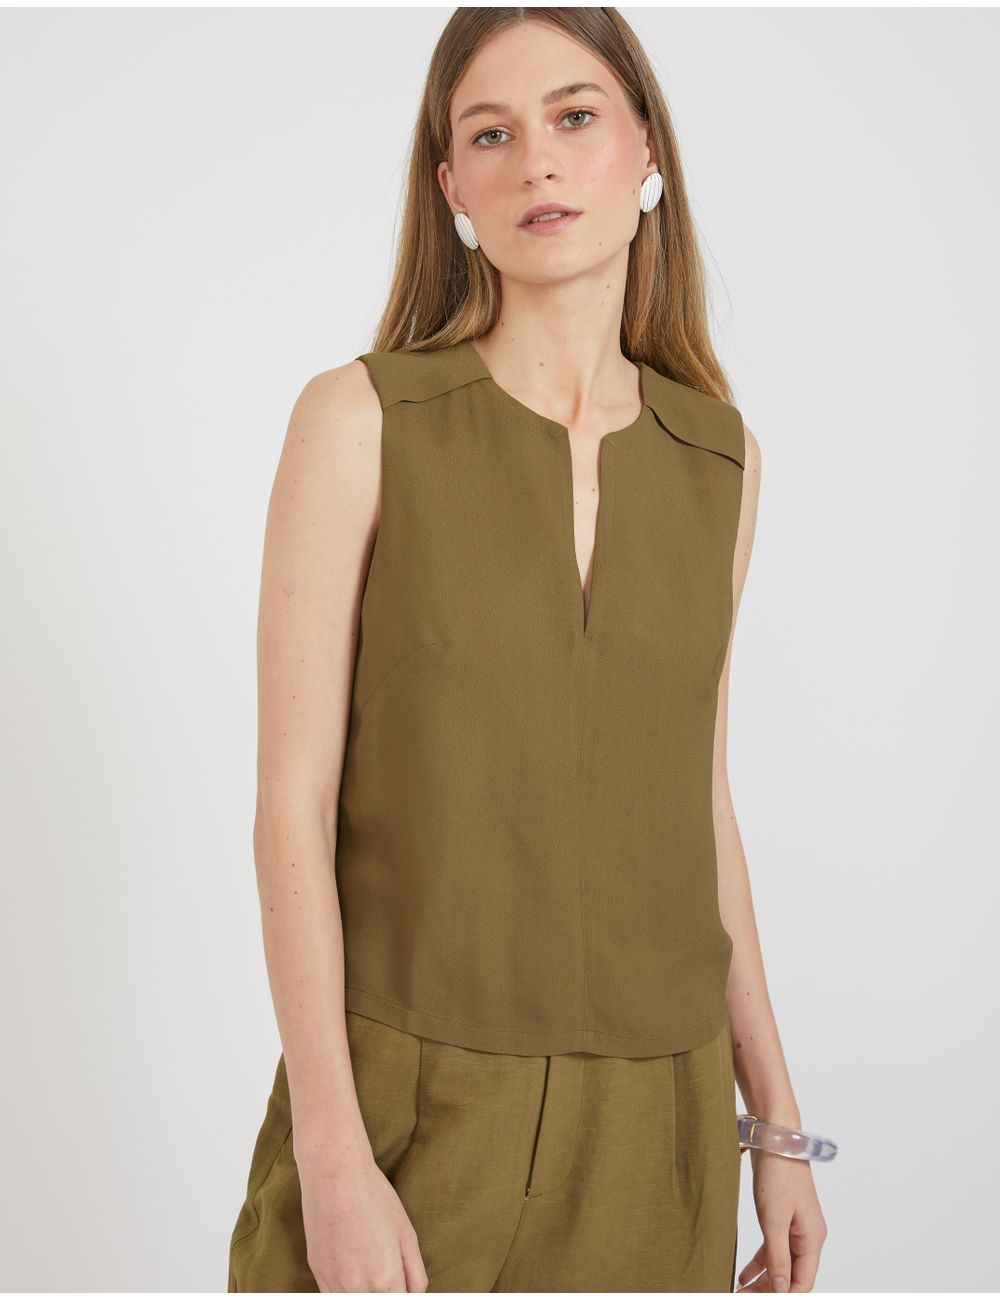 1505401_084_1-BLUSA-CROPPED-CREPE